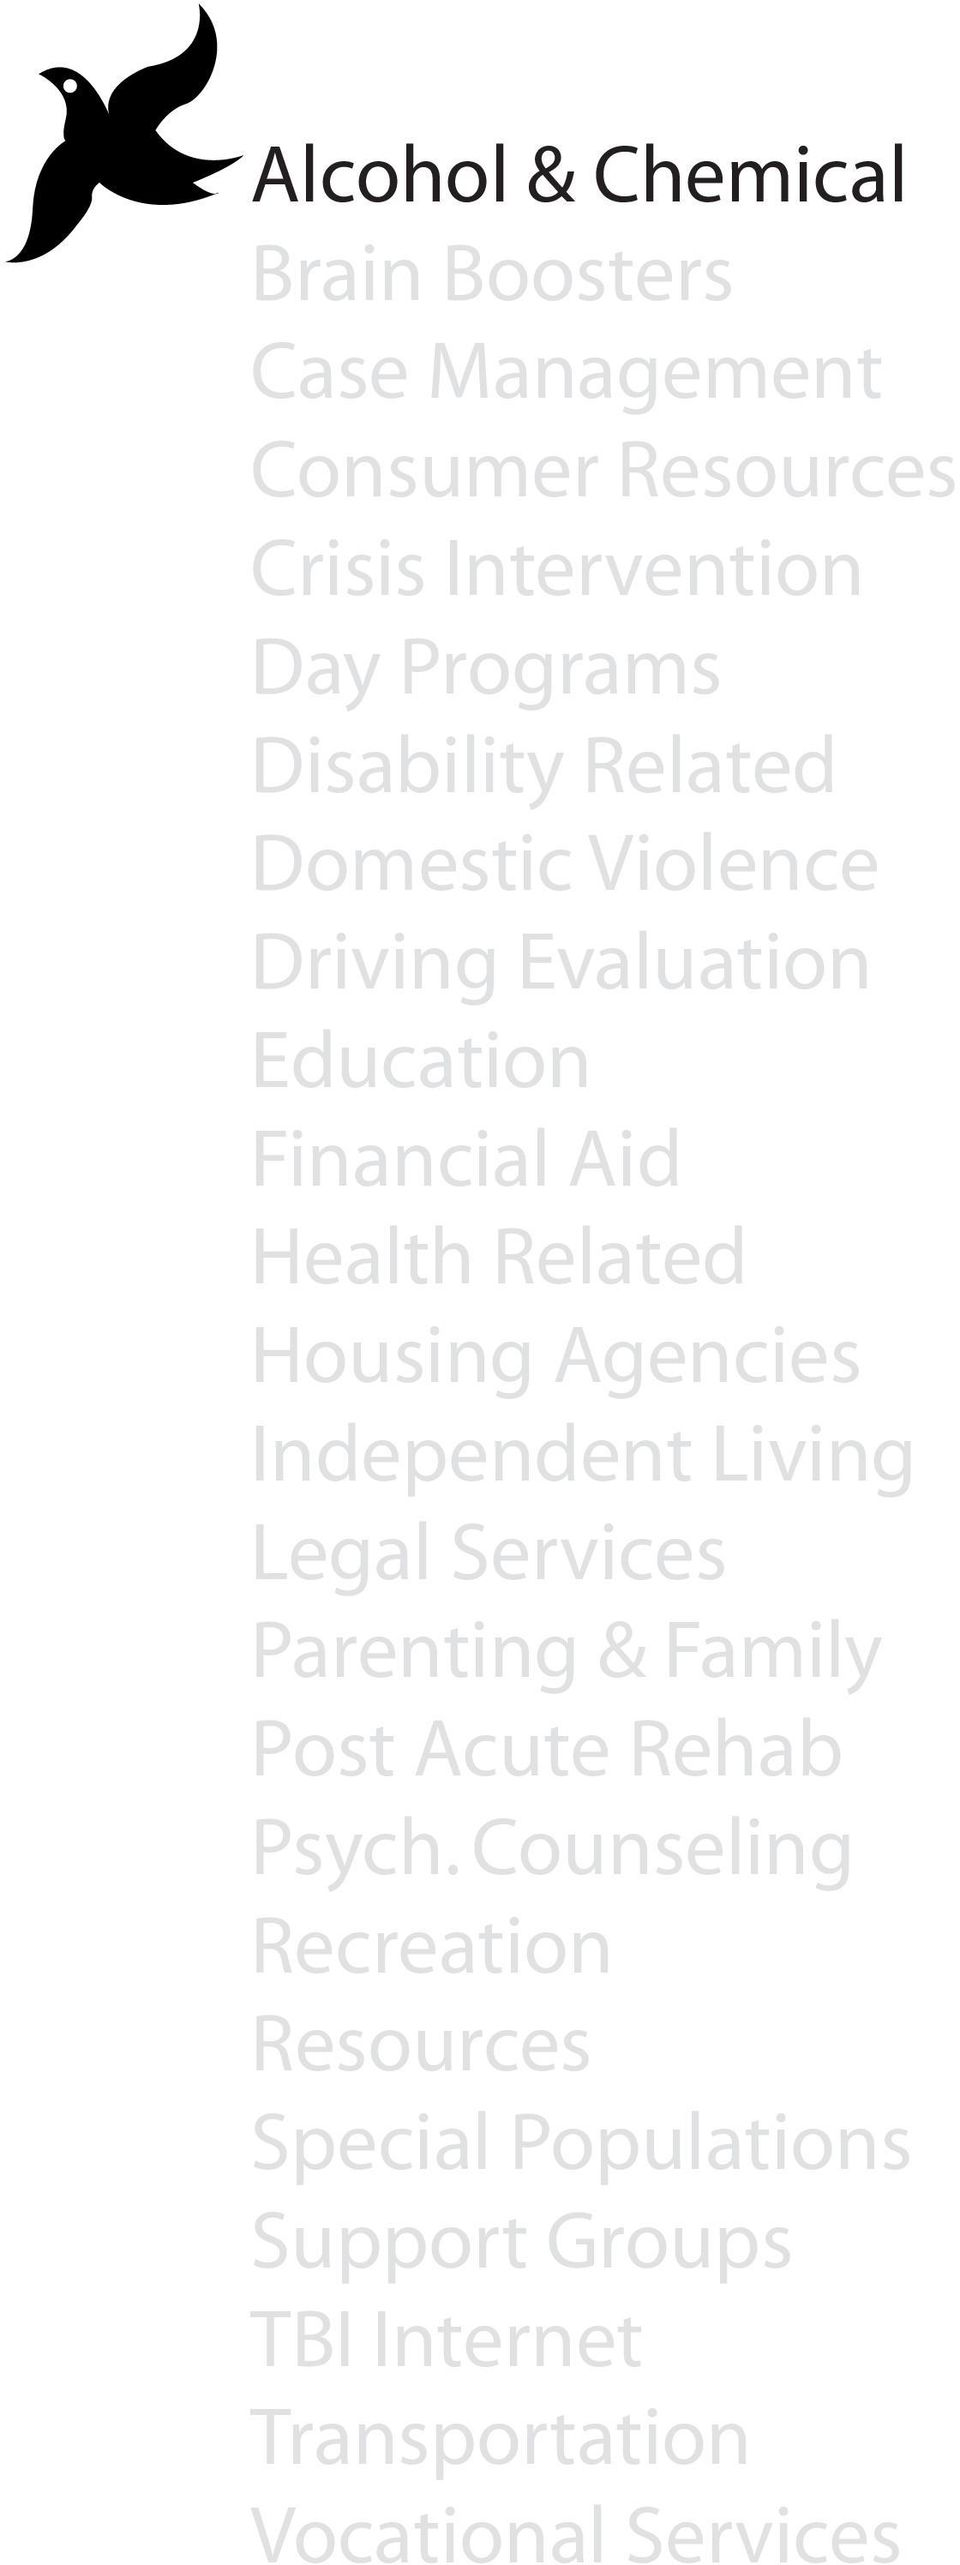 Housing Agencies Independent Living Legal Services Parenting & Family Post Acute Rehab Psych.